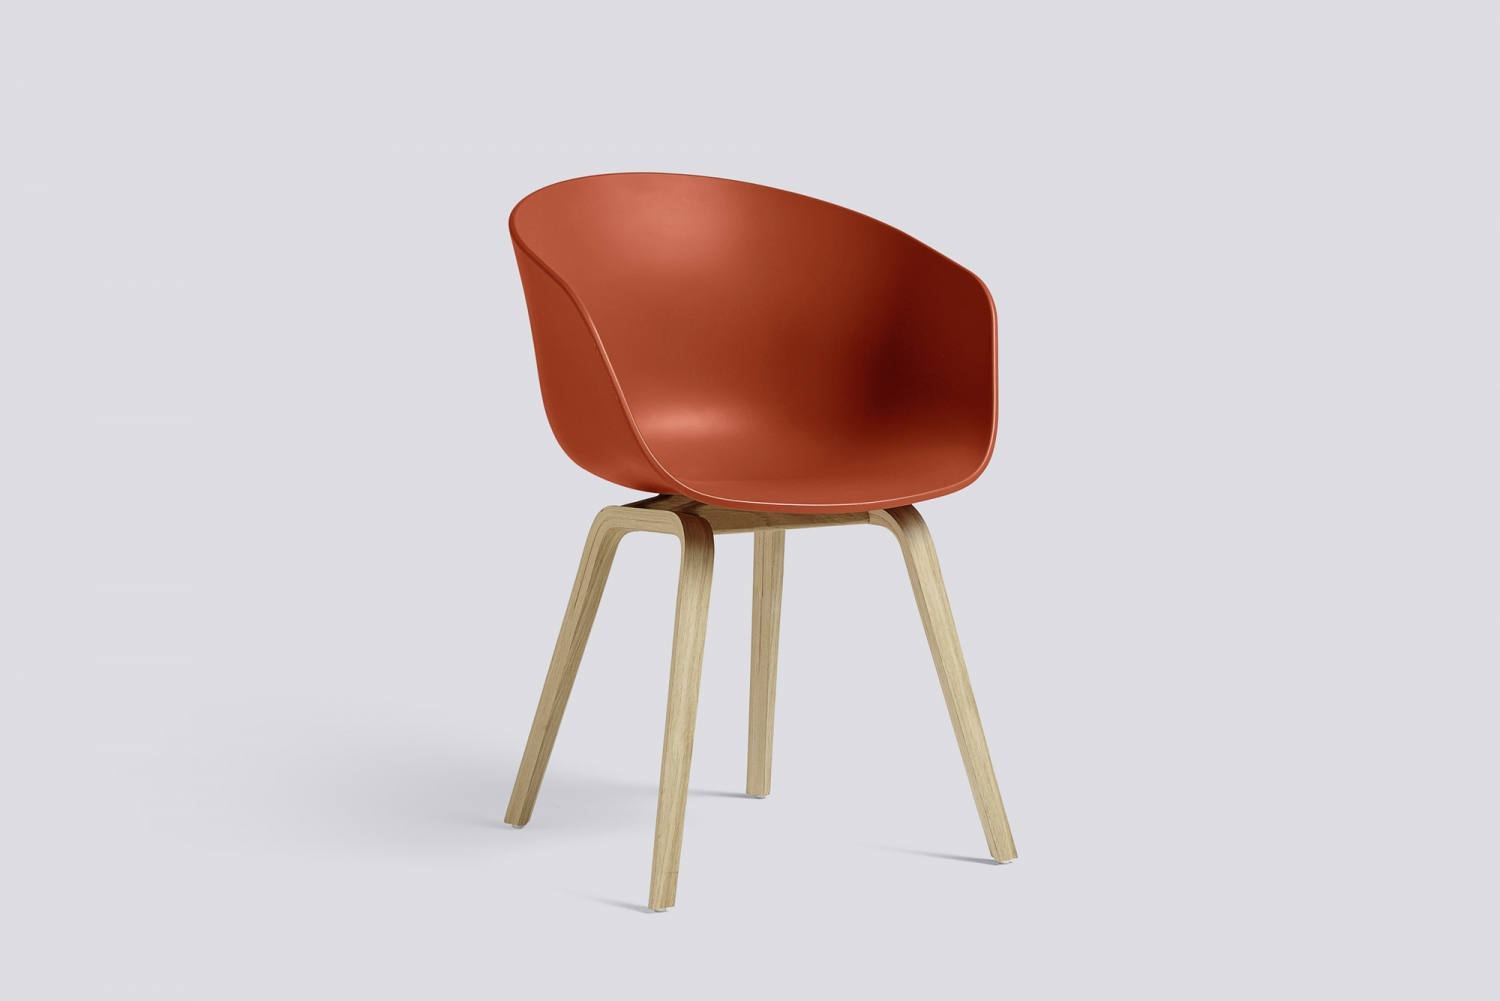 about a chair aac 22 news hayshopno chair aac 22 hay